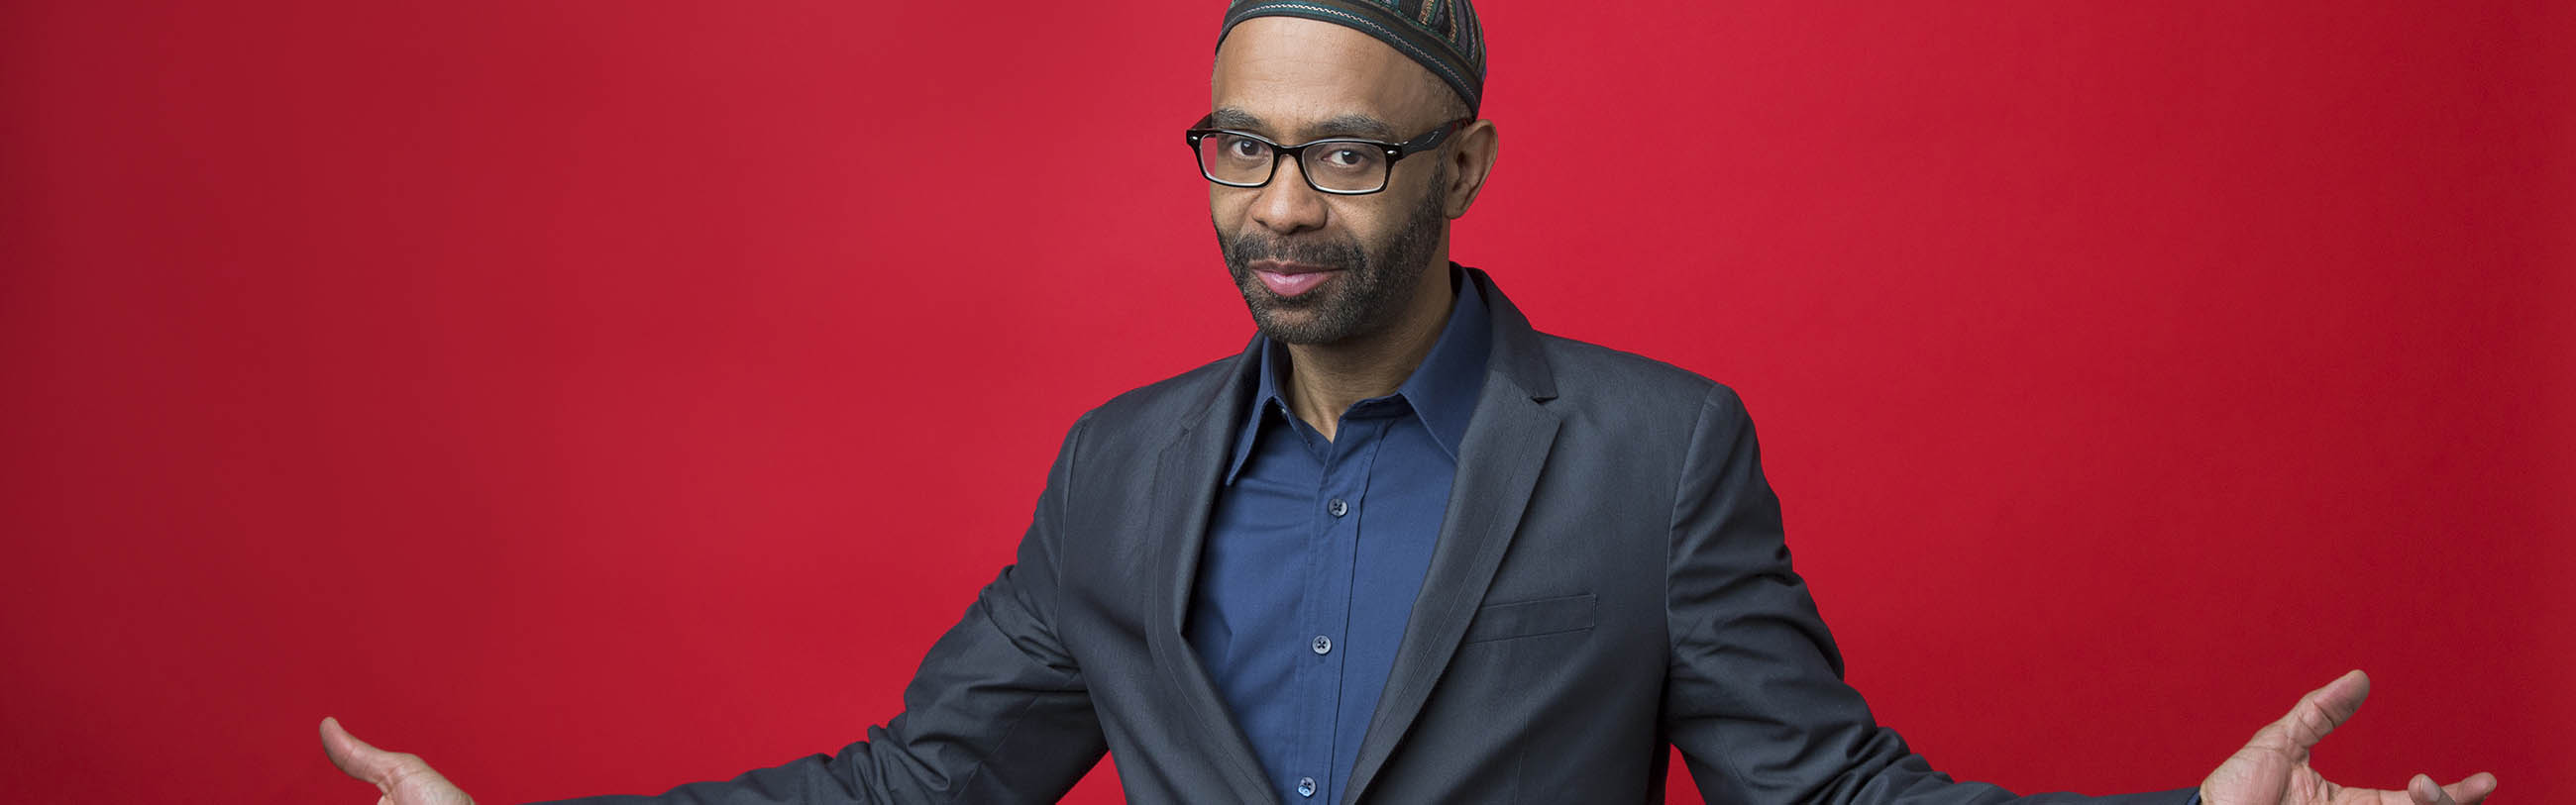 mac1098_kenny_garrett_pr2222_300rgb_by_jimmy_katz